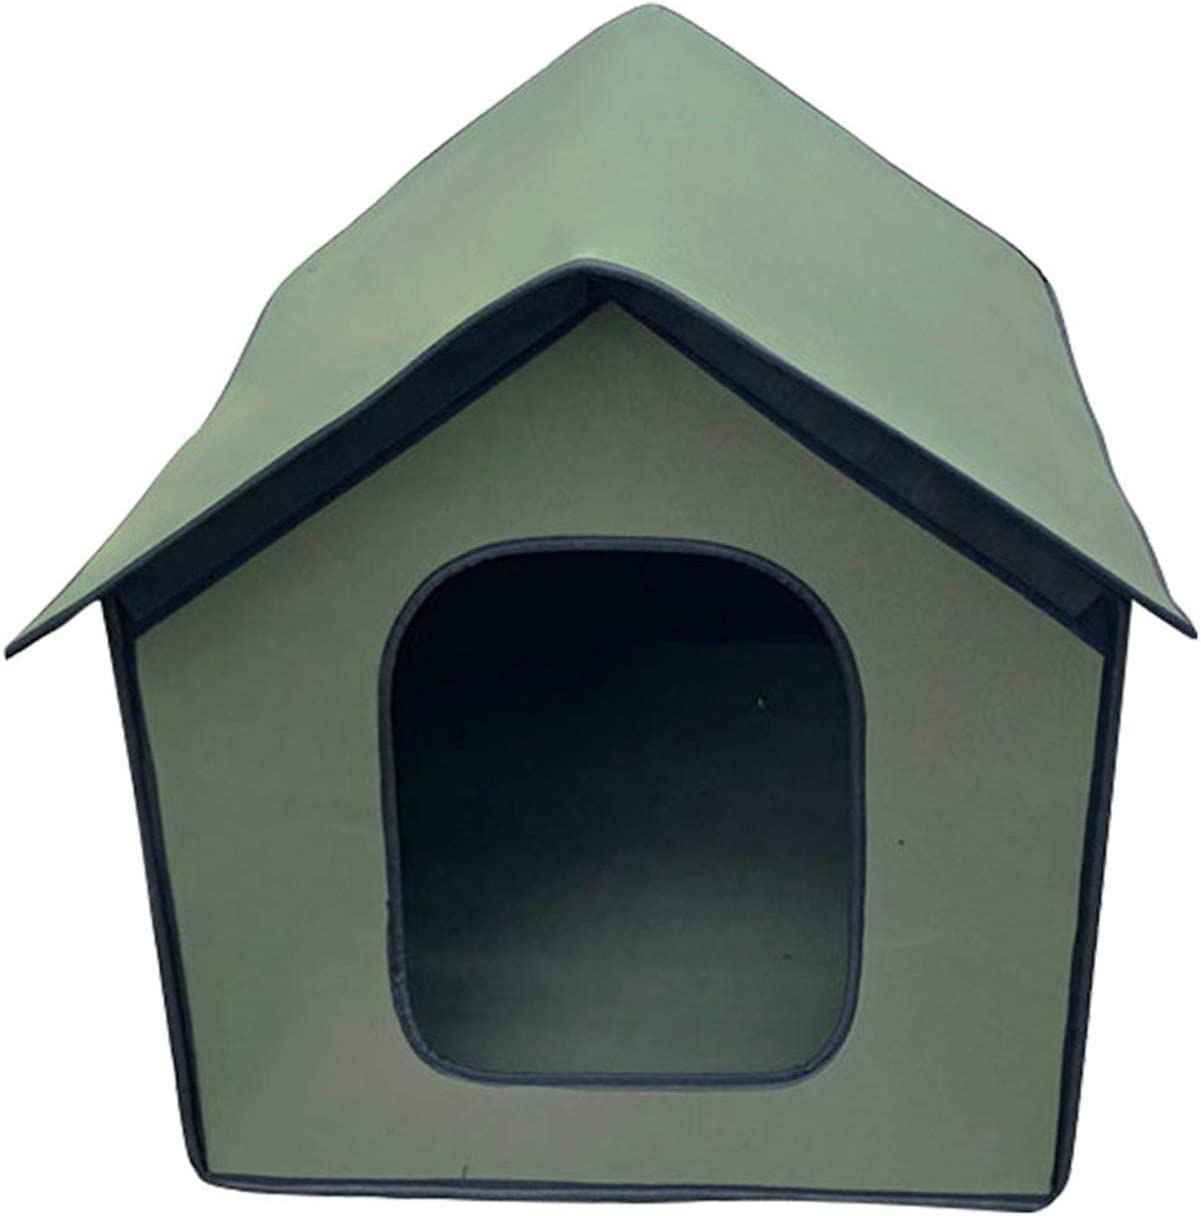 Feral Cat House Foldable Kitty House Cat Shelter for Pets Waterproof Pet Outdoor Cat House